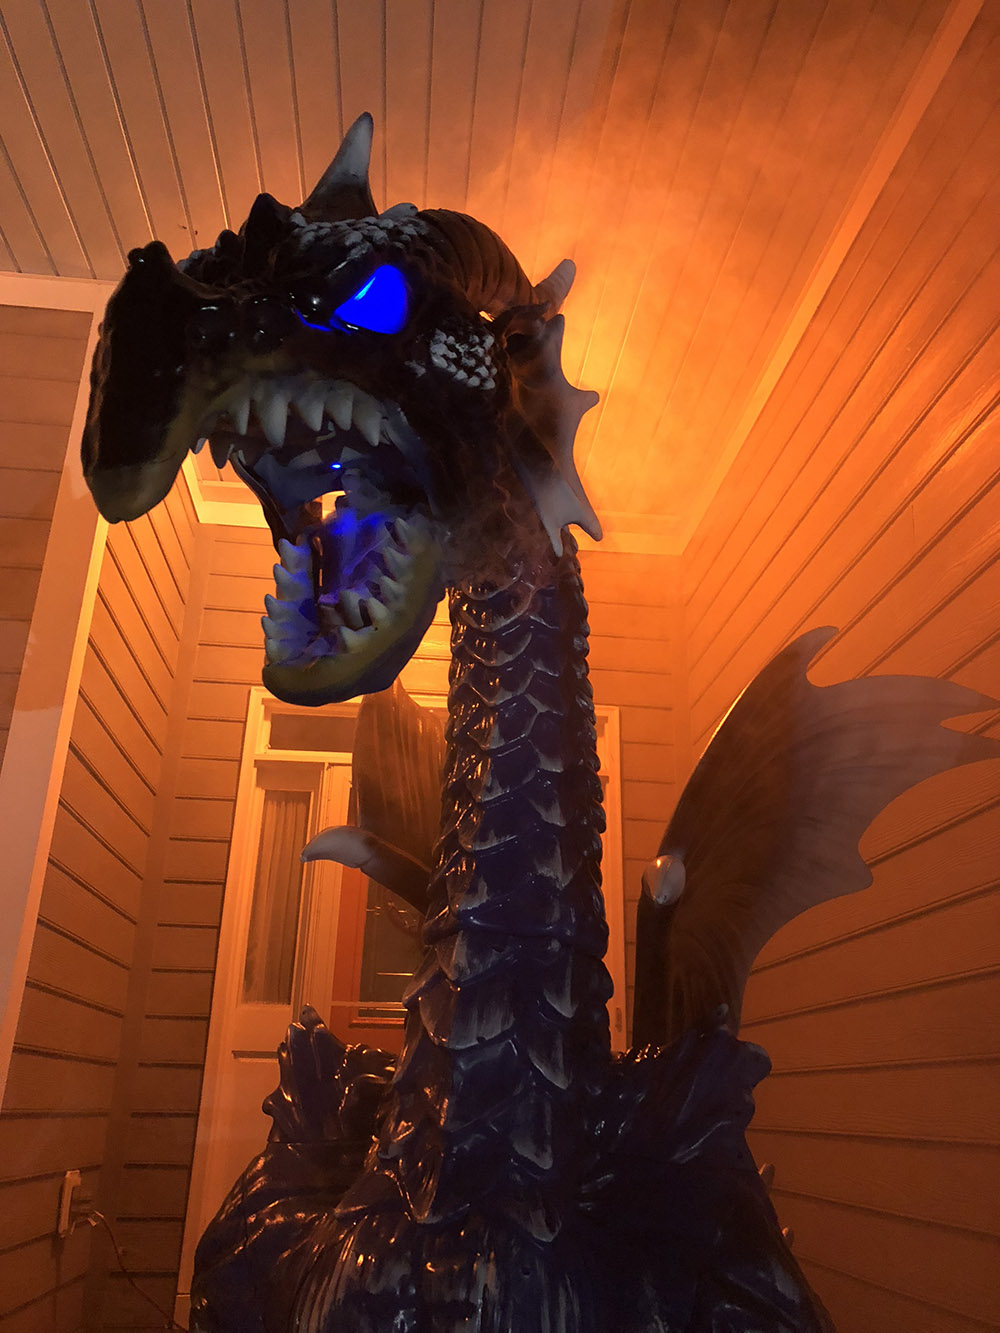 A giant dragon with glowing eyes.